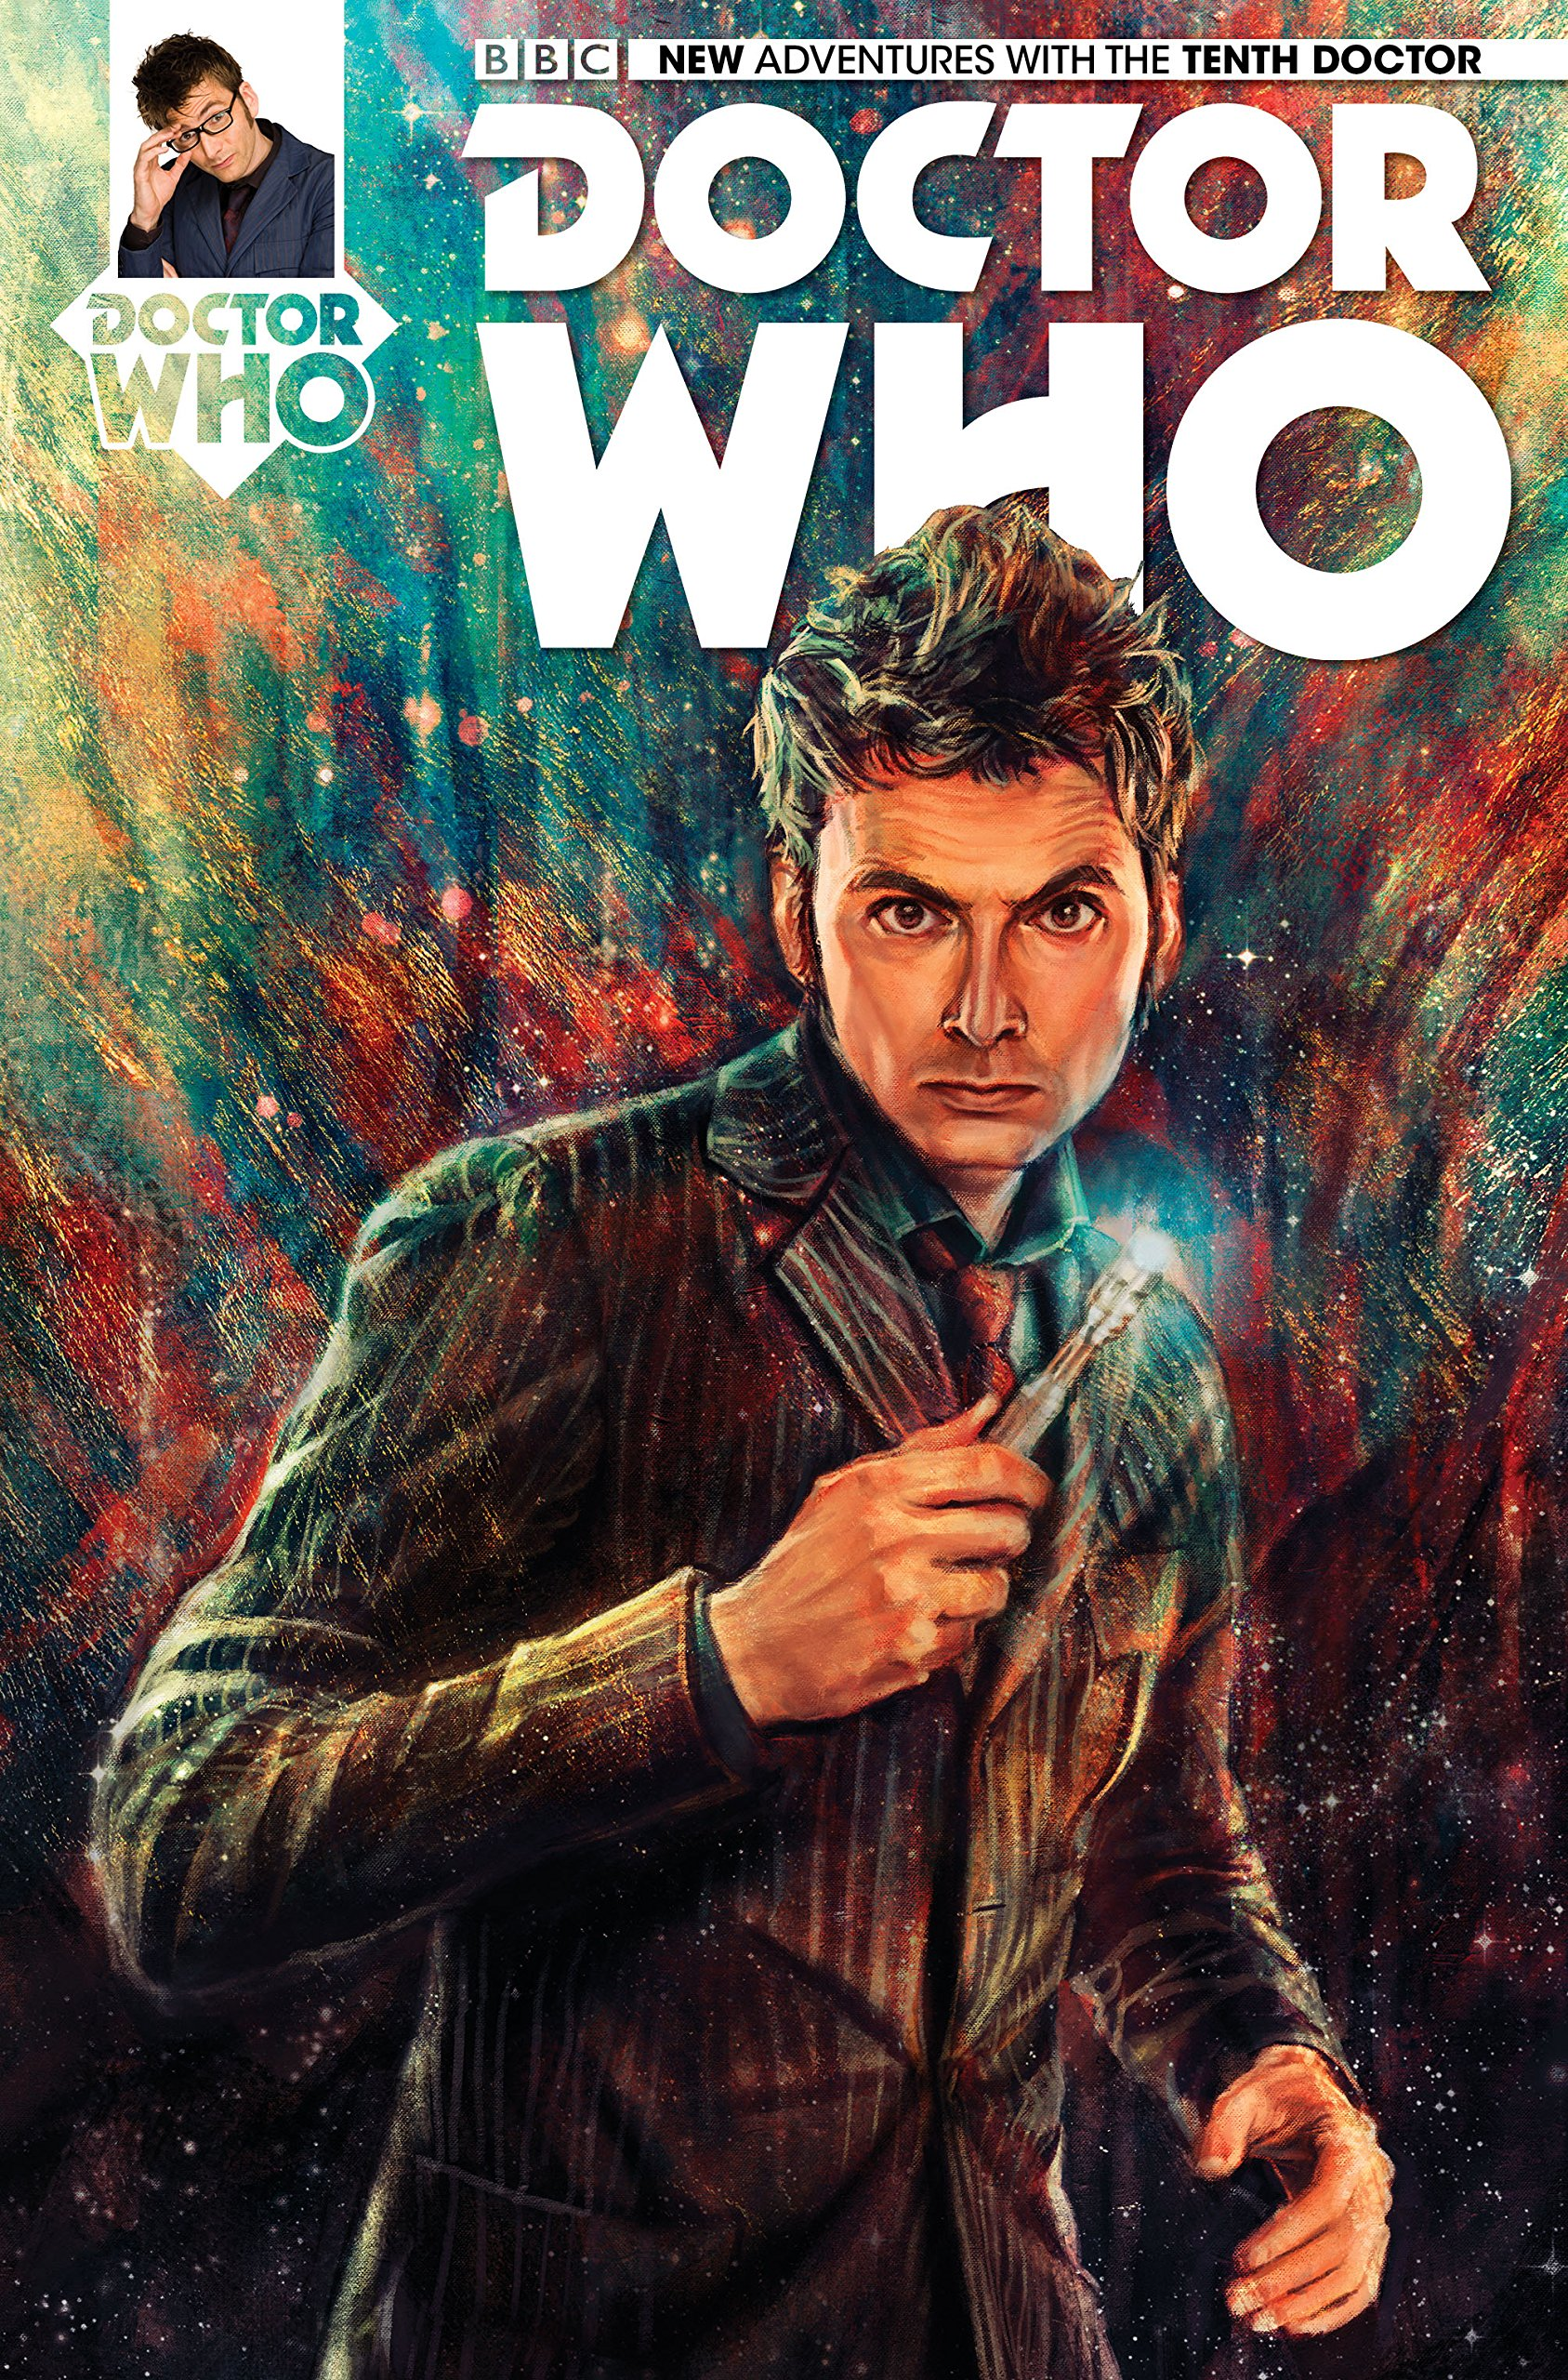 10th Doctor X Suicidal Reader